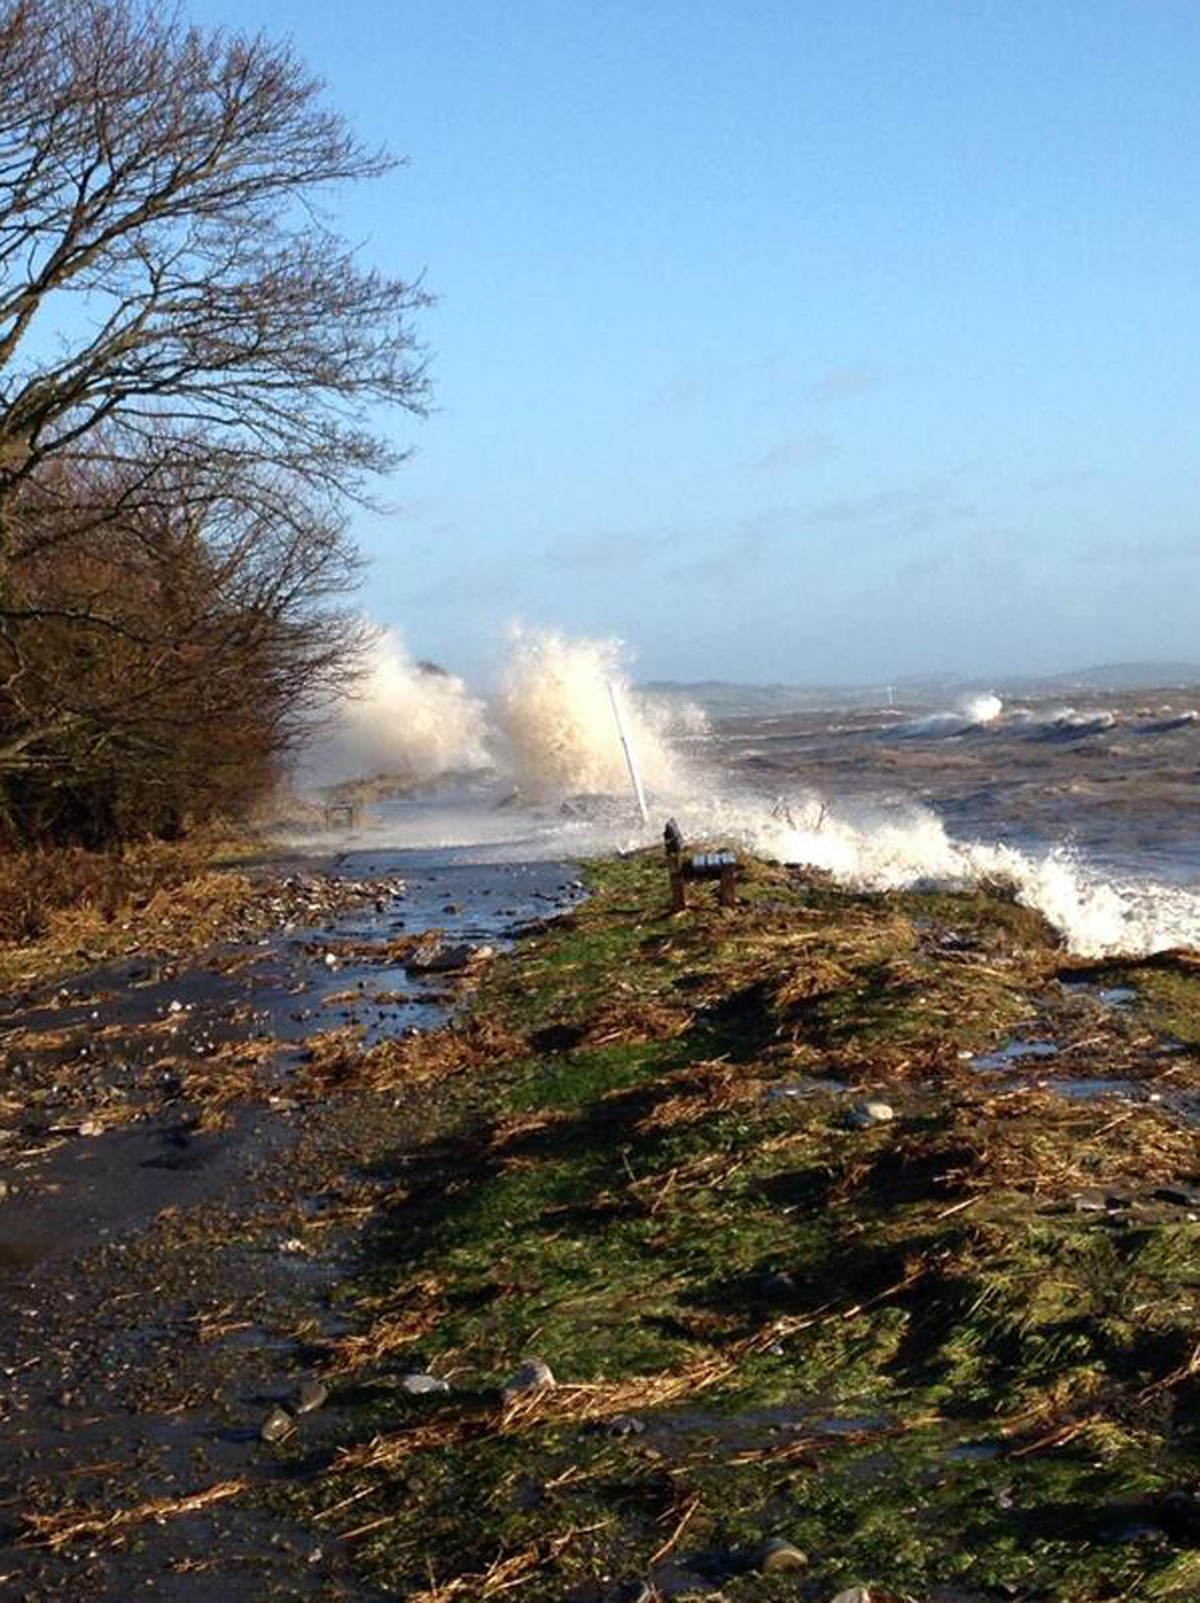 Police continue to warn people to stay away from seaside locations as high tide reaches height